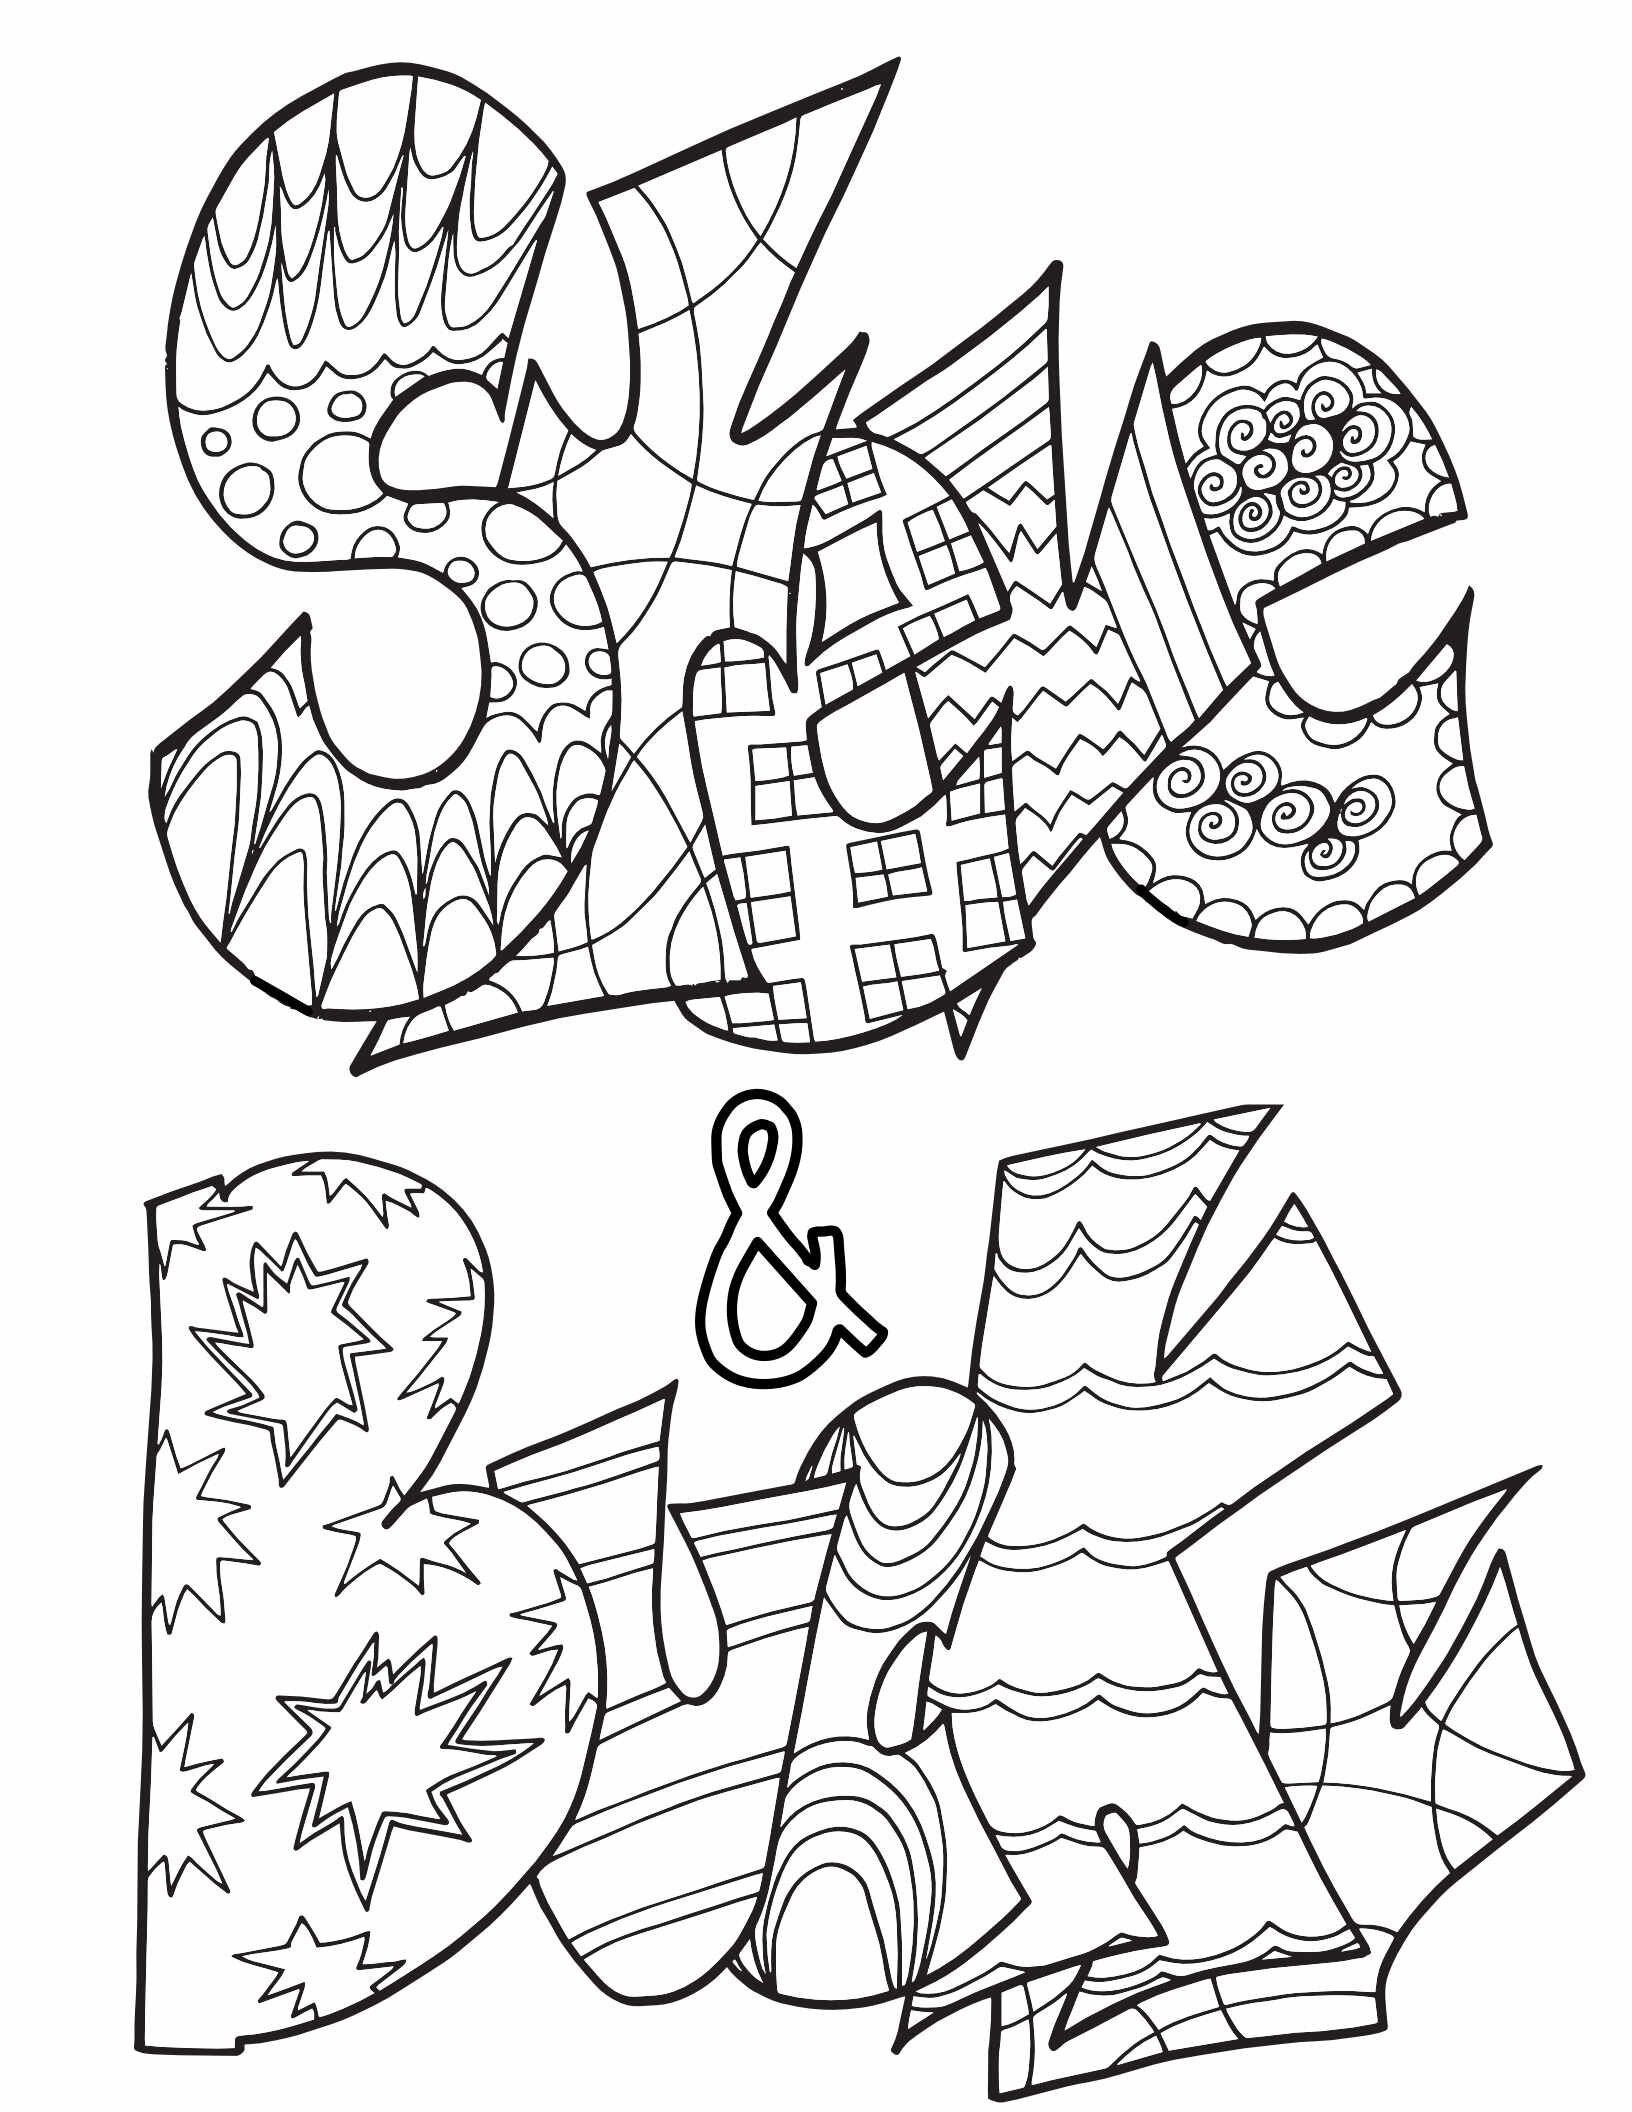 10 Free Non-Romantic Couples Coloring Pages - My 10 ...